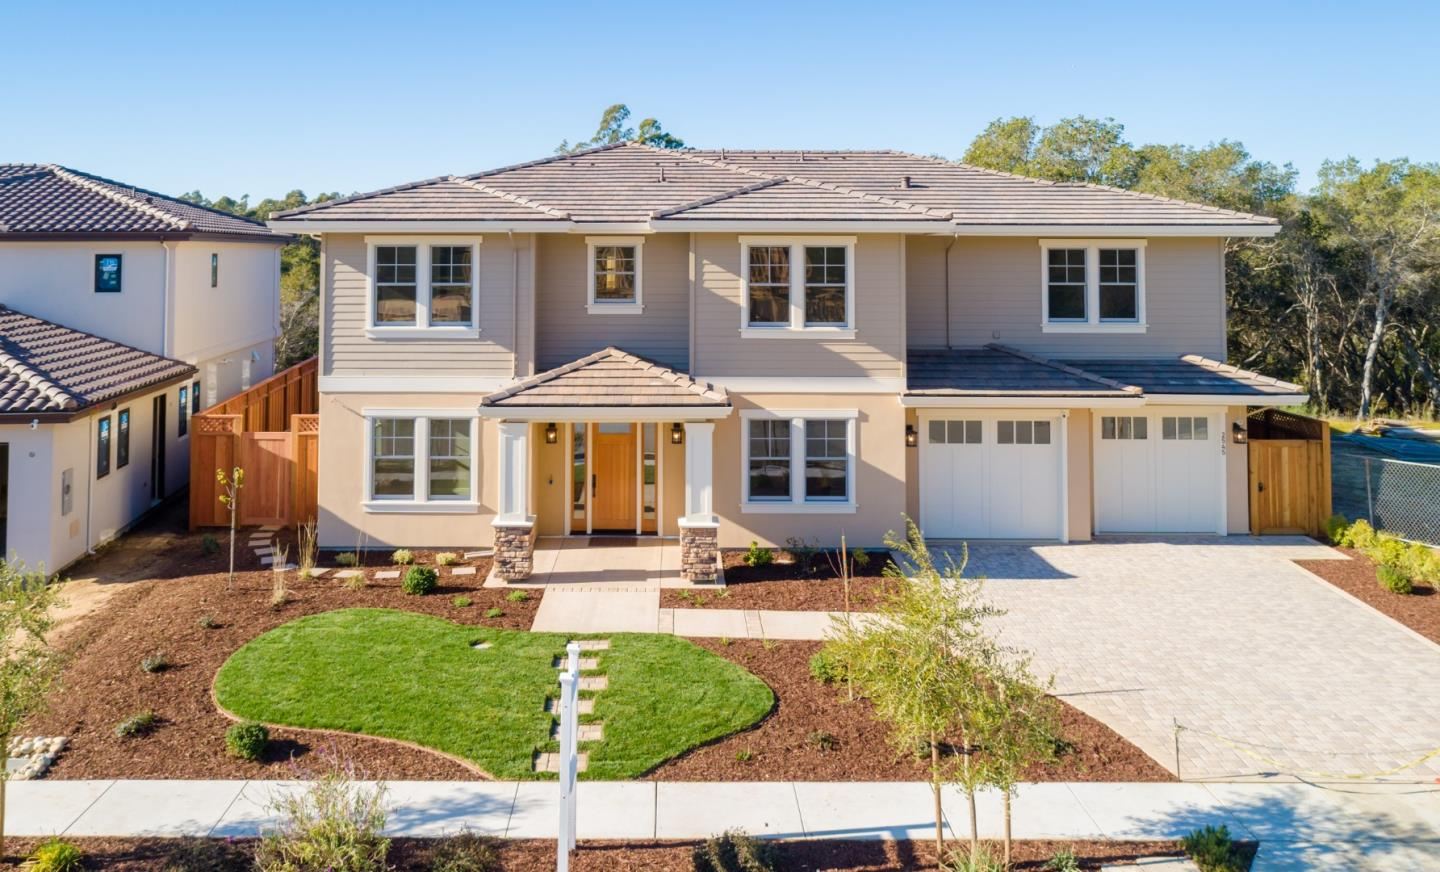 Welcome to the brand new luxury Benson Avenue Subdivision, located on a sunny secluded cul-de-sac adjacent to Santa Cruz gardens. Sweeping Monterey Bay ocean views, and green belt access await, along with miles of different hiking trails and serene landscape. This is a new, custom built home, with tasteful finishes and thoughtful amenities to match. Master suite has walk in closets and a luxury soaking tub. Enjoy radiant heat flooring throughout, custom closet systems, smart wiring, central vac system, surround sound, hardwood floors, quartz countertops, chefs kitchen, thermadore appliances and so much more! This home has a beautiful covered patio with accordion doors that look out to an unobstructed green belt. This is a great family home with easy access to an amazing school district, excellent commute location, downtown Santa Cruz shopping and restaurants, or just across the way beautiful Capitola and Pleasure Point beach neighborhoods. This stunning property is a must see!